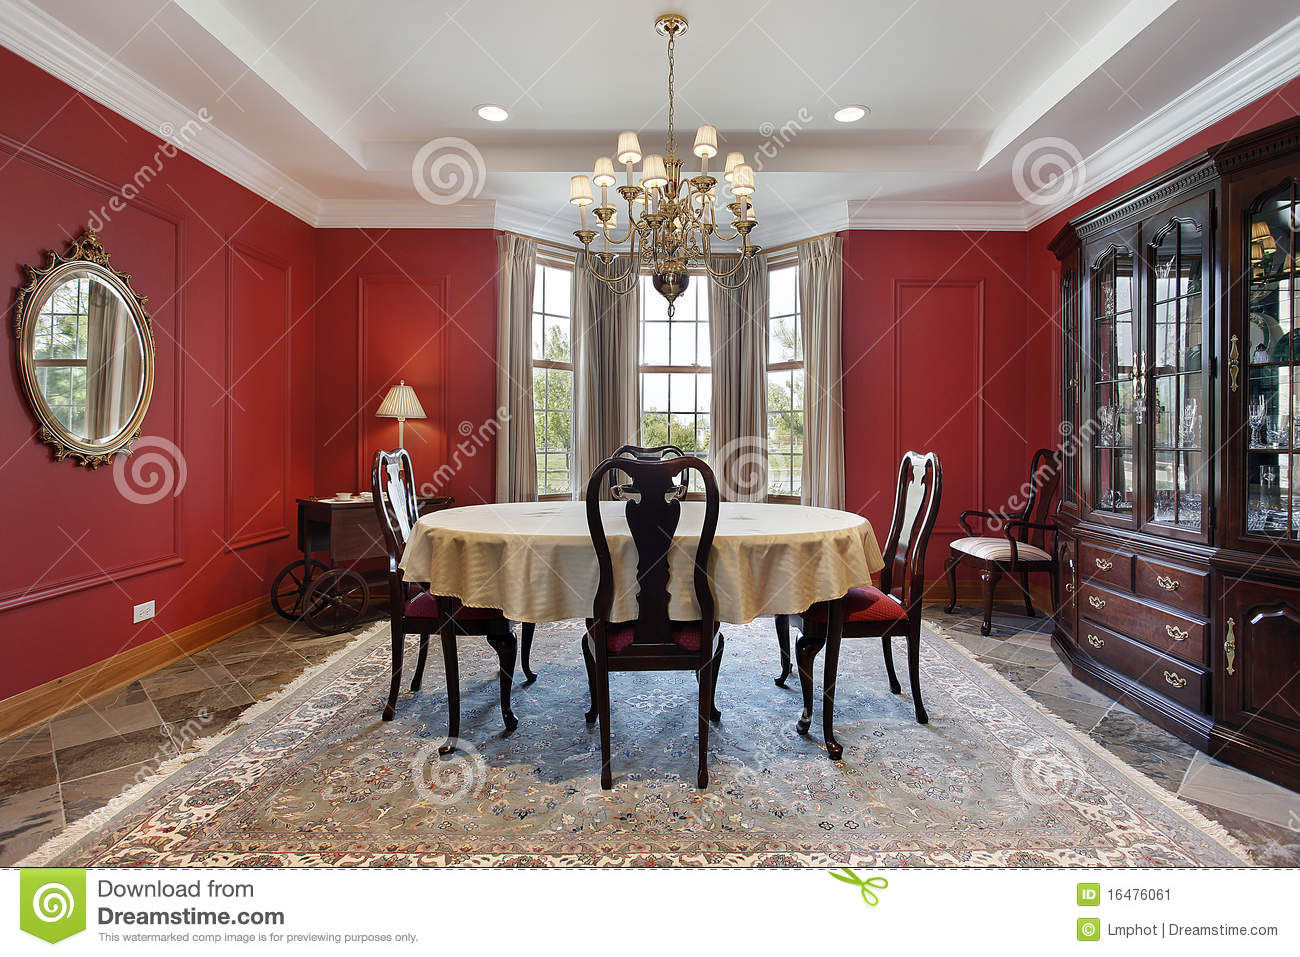 Dining Room With Red Walls Stock Image Image 16476061